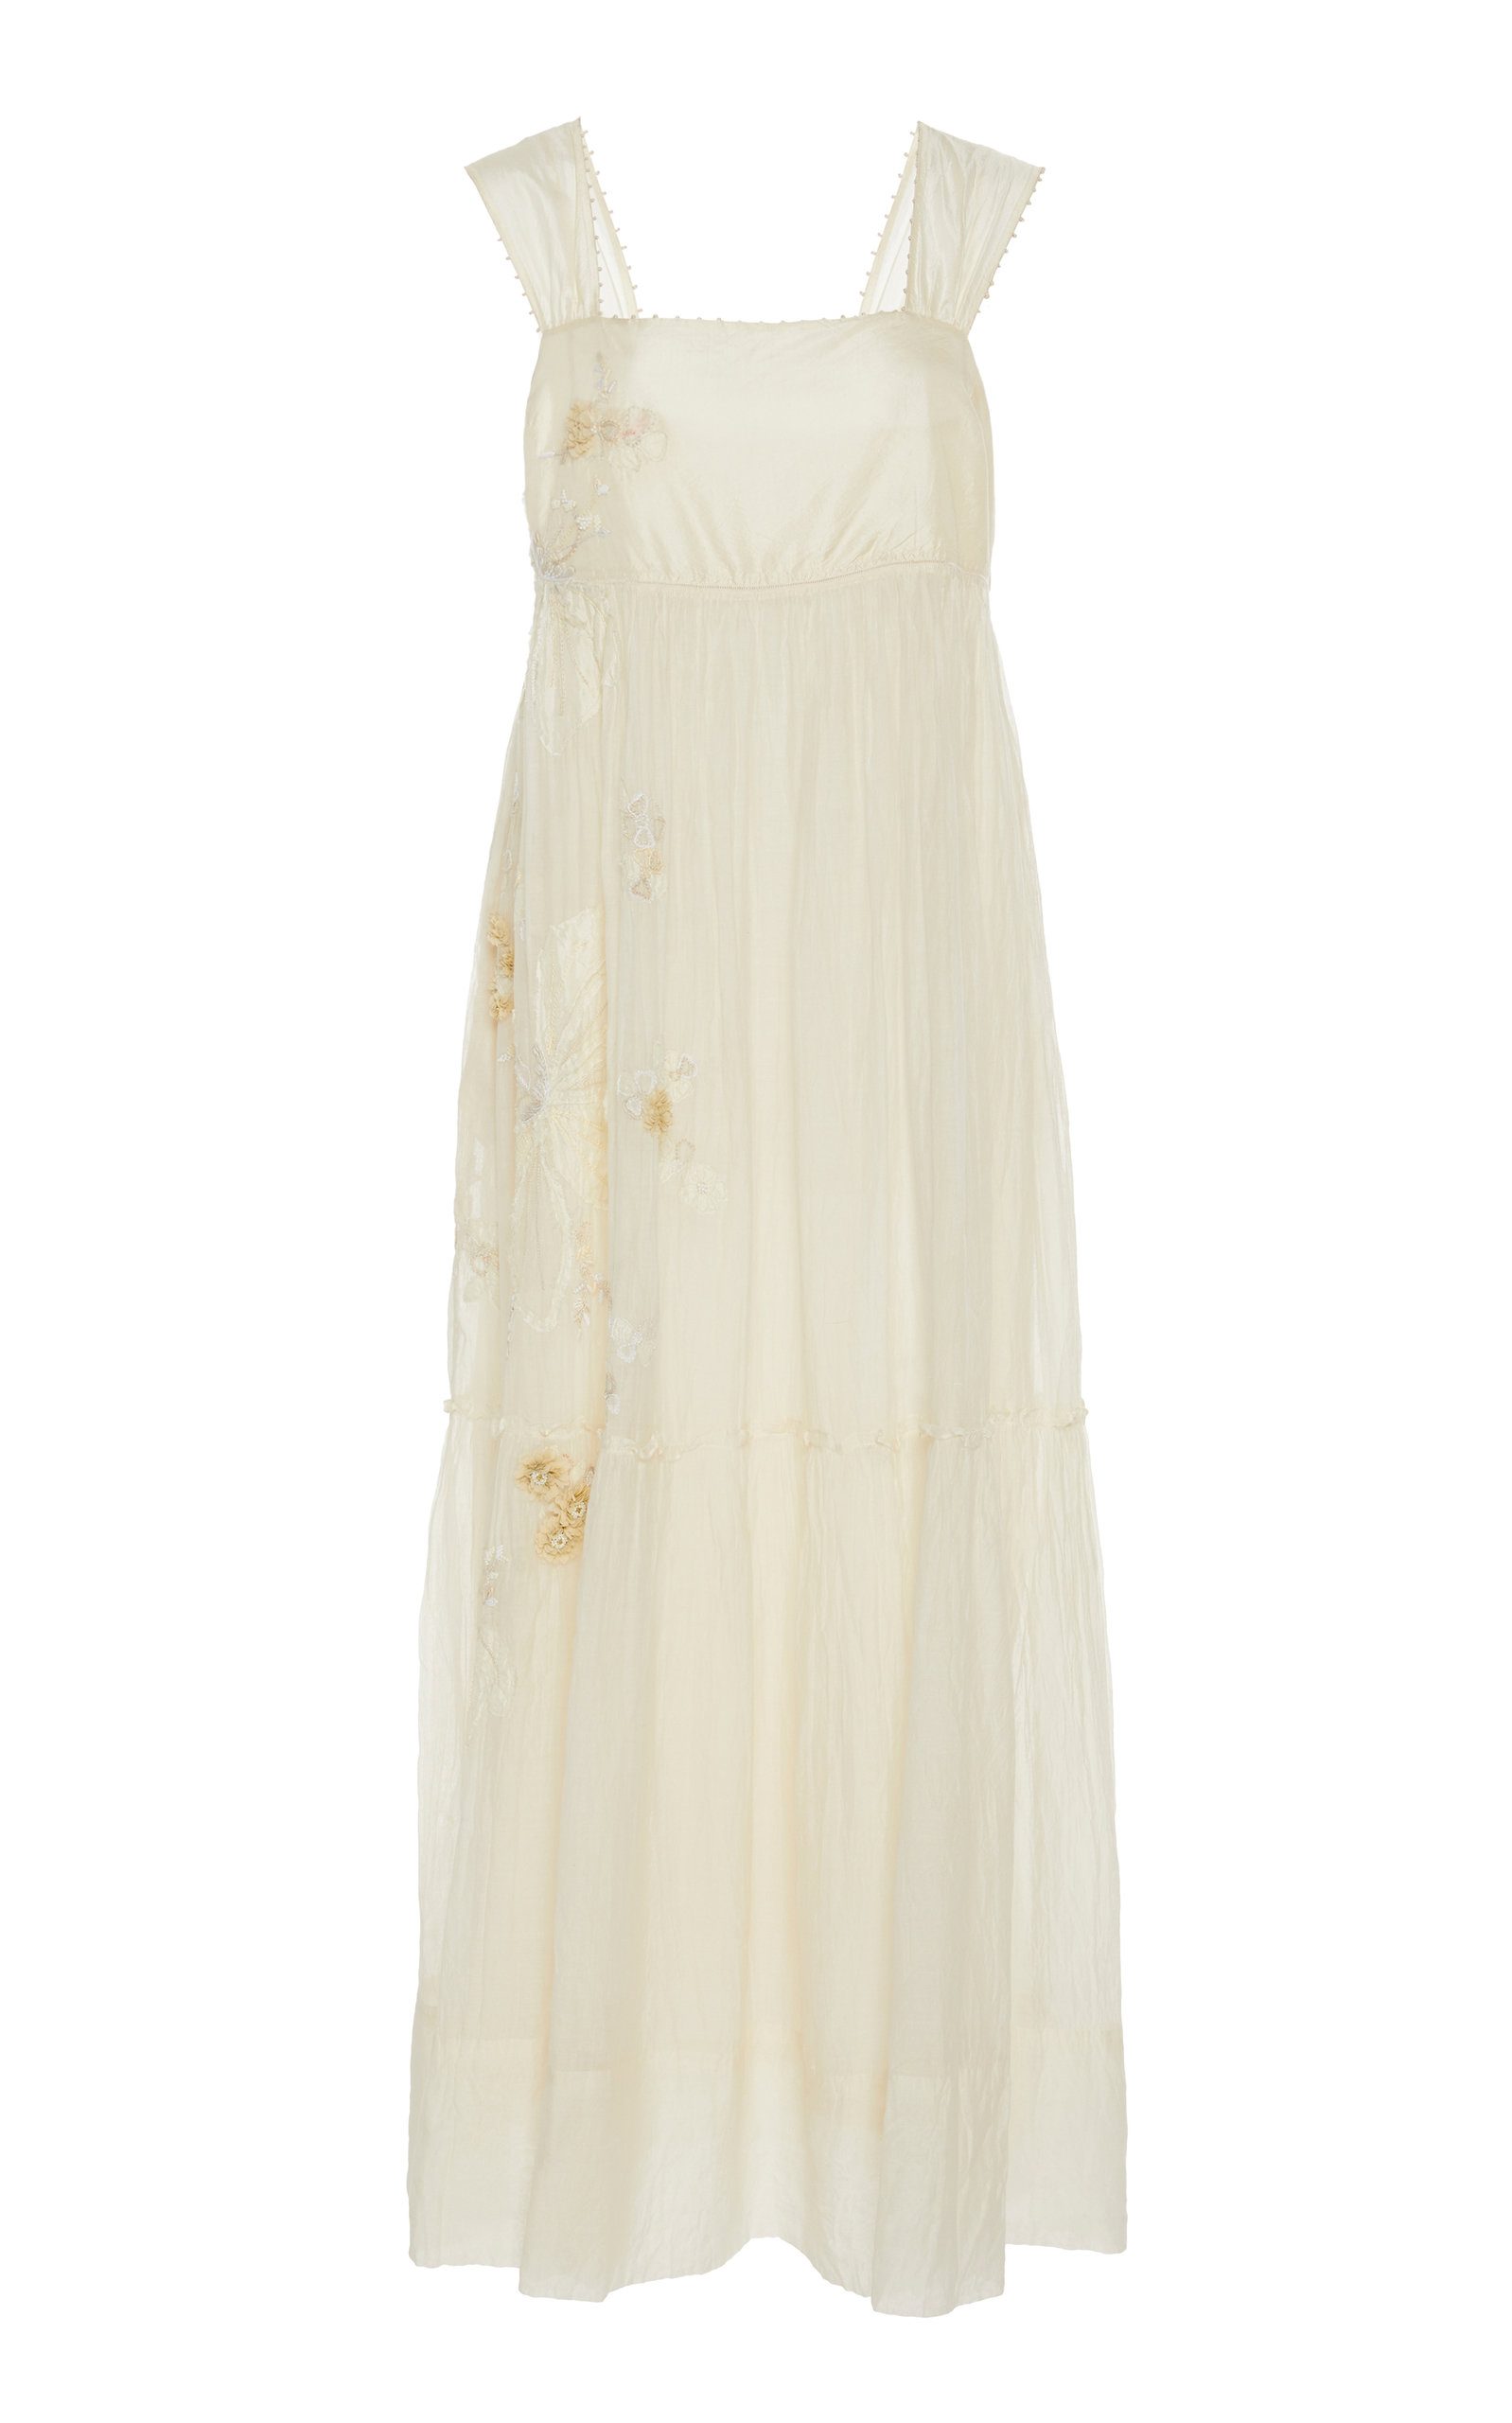 PÉRO Embroidered Cotton Dress in White